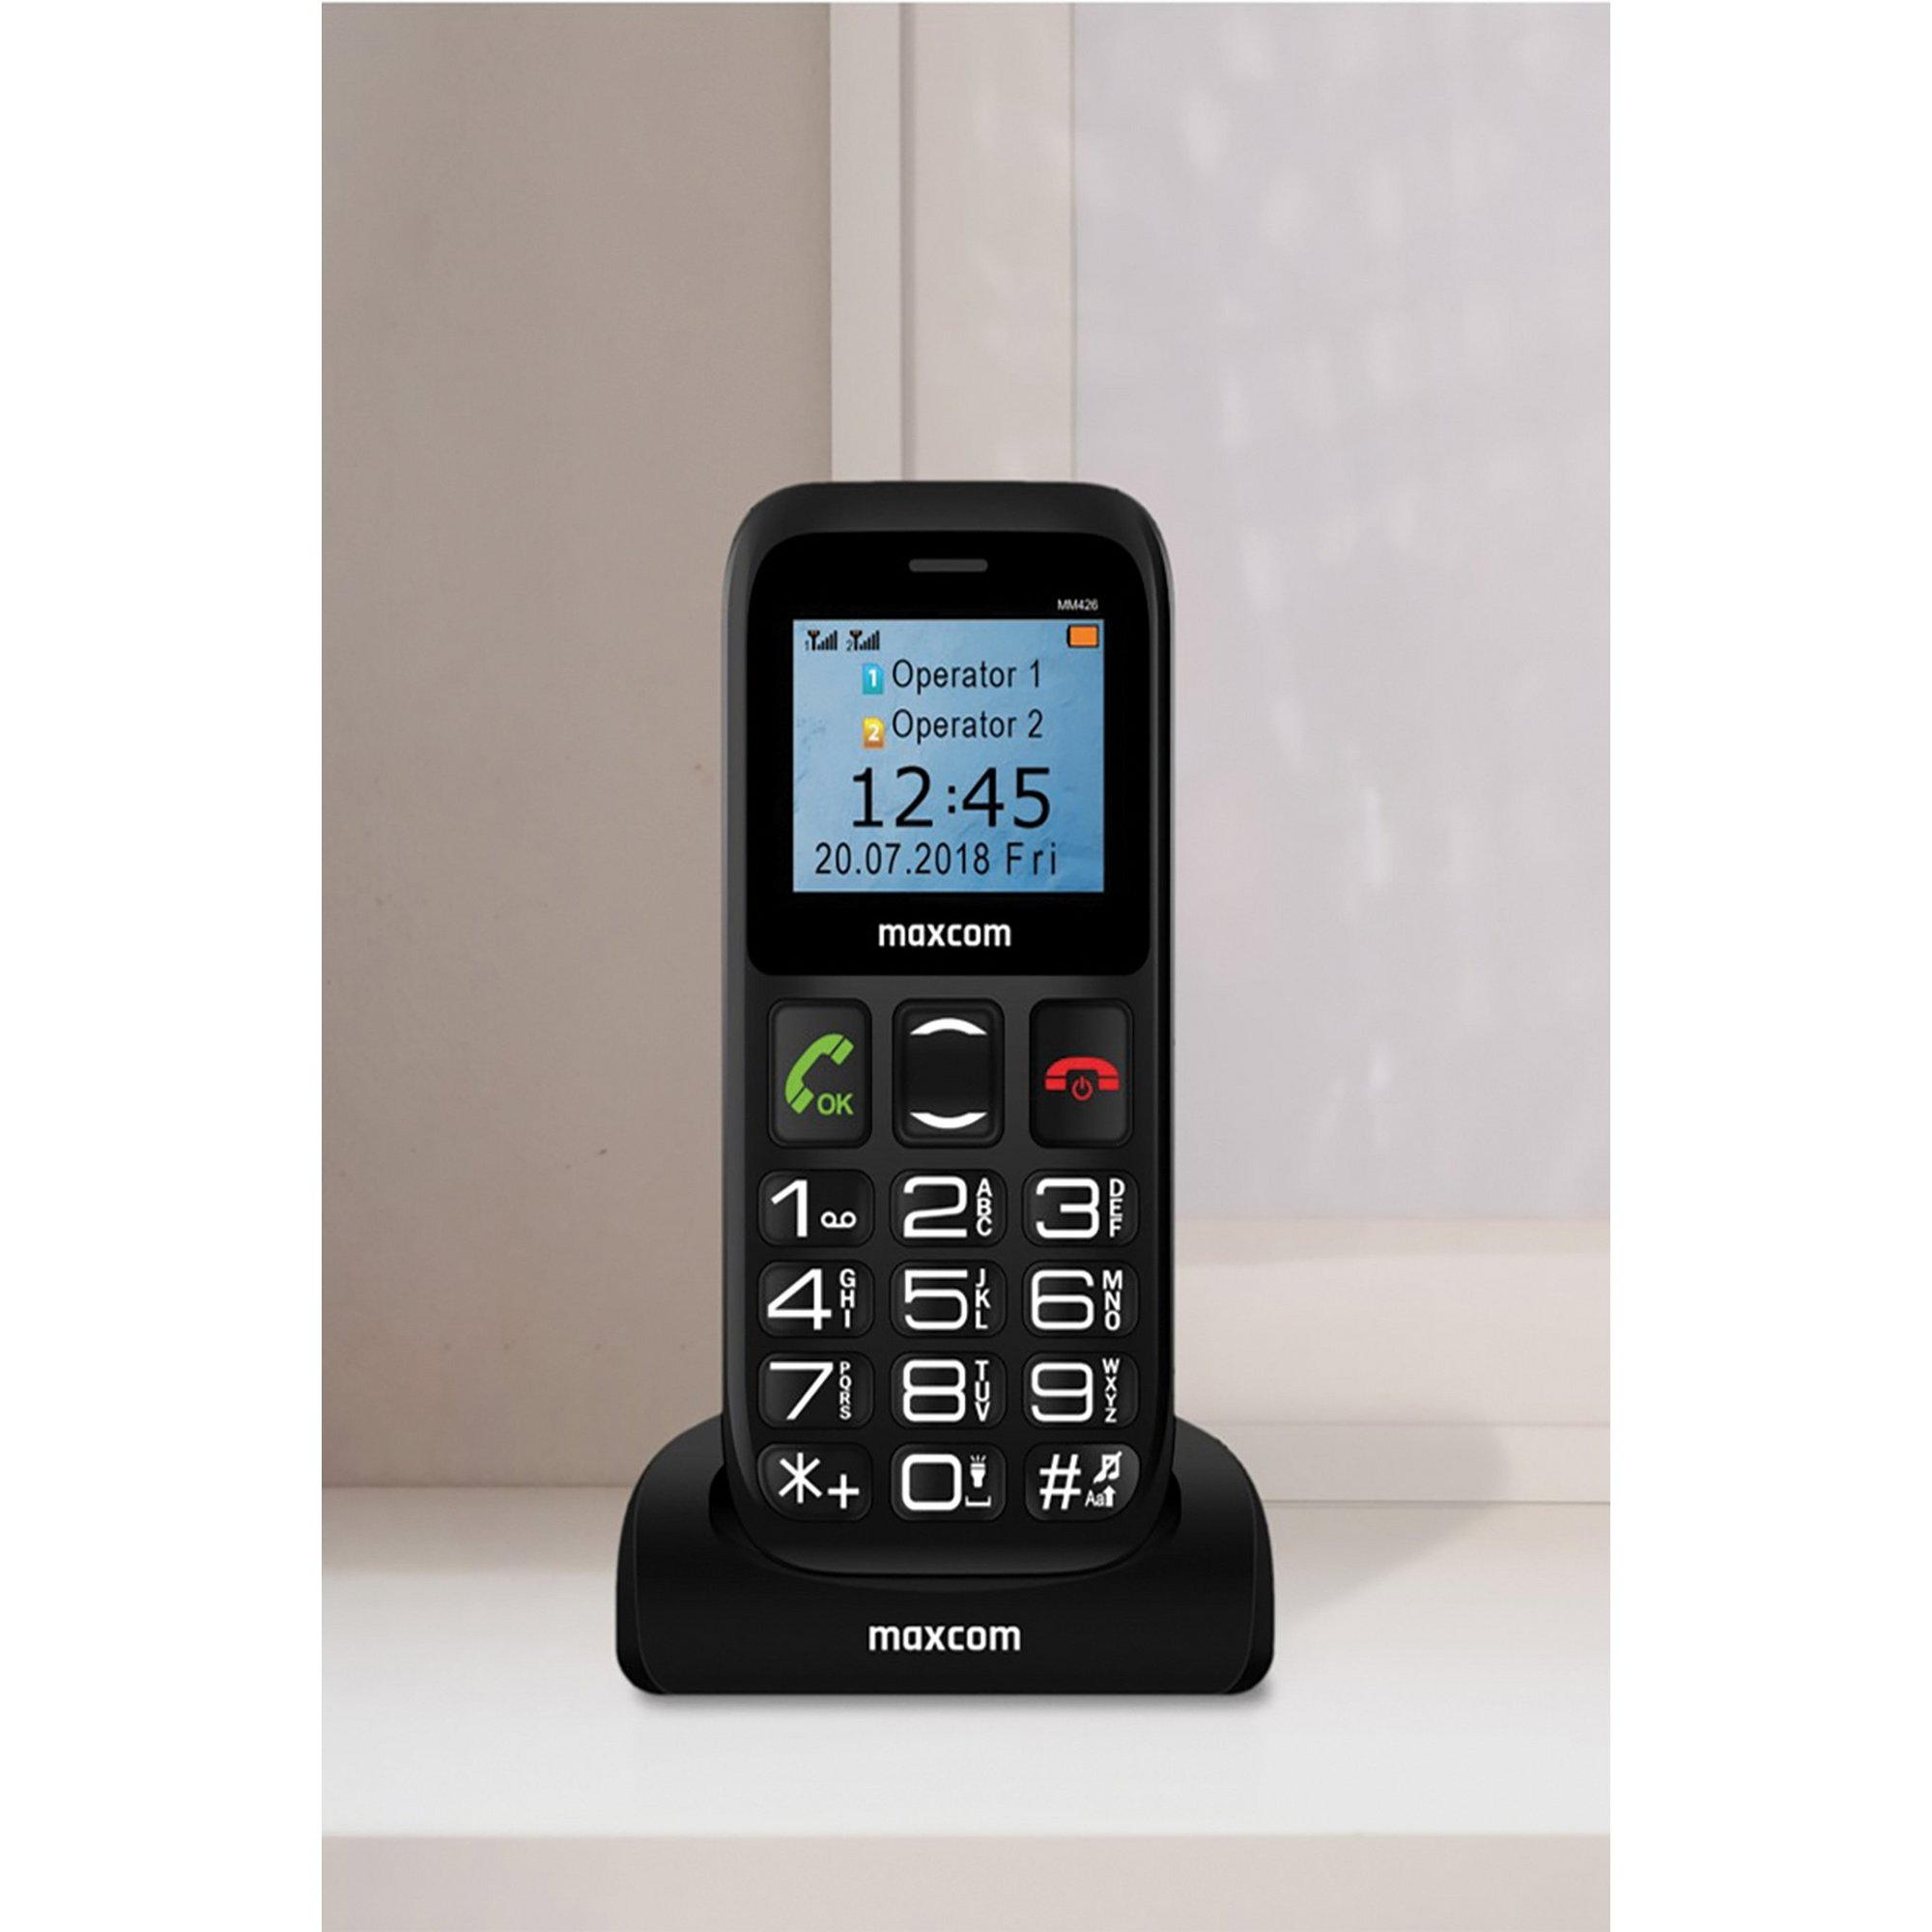 Image of Maxcom Comfort MM426 Mobile Phone